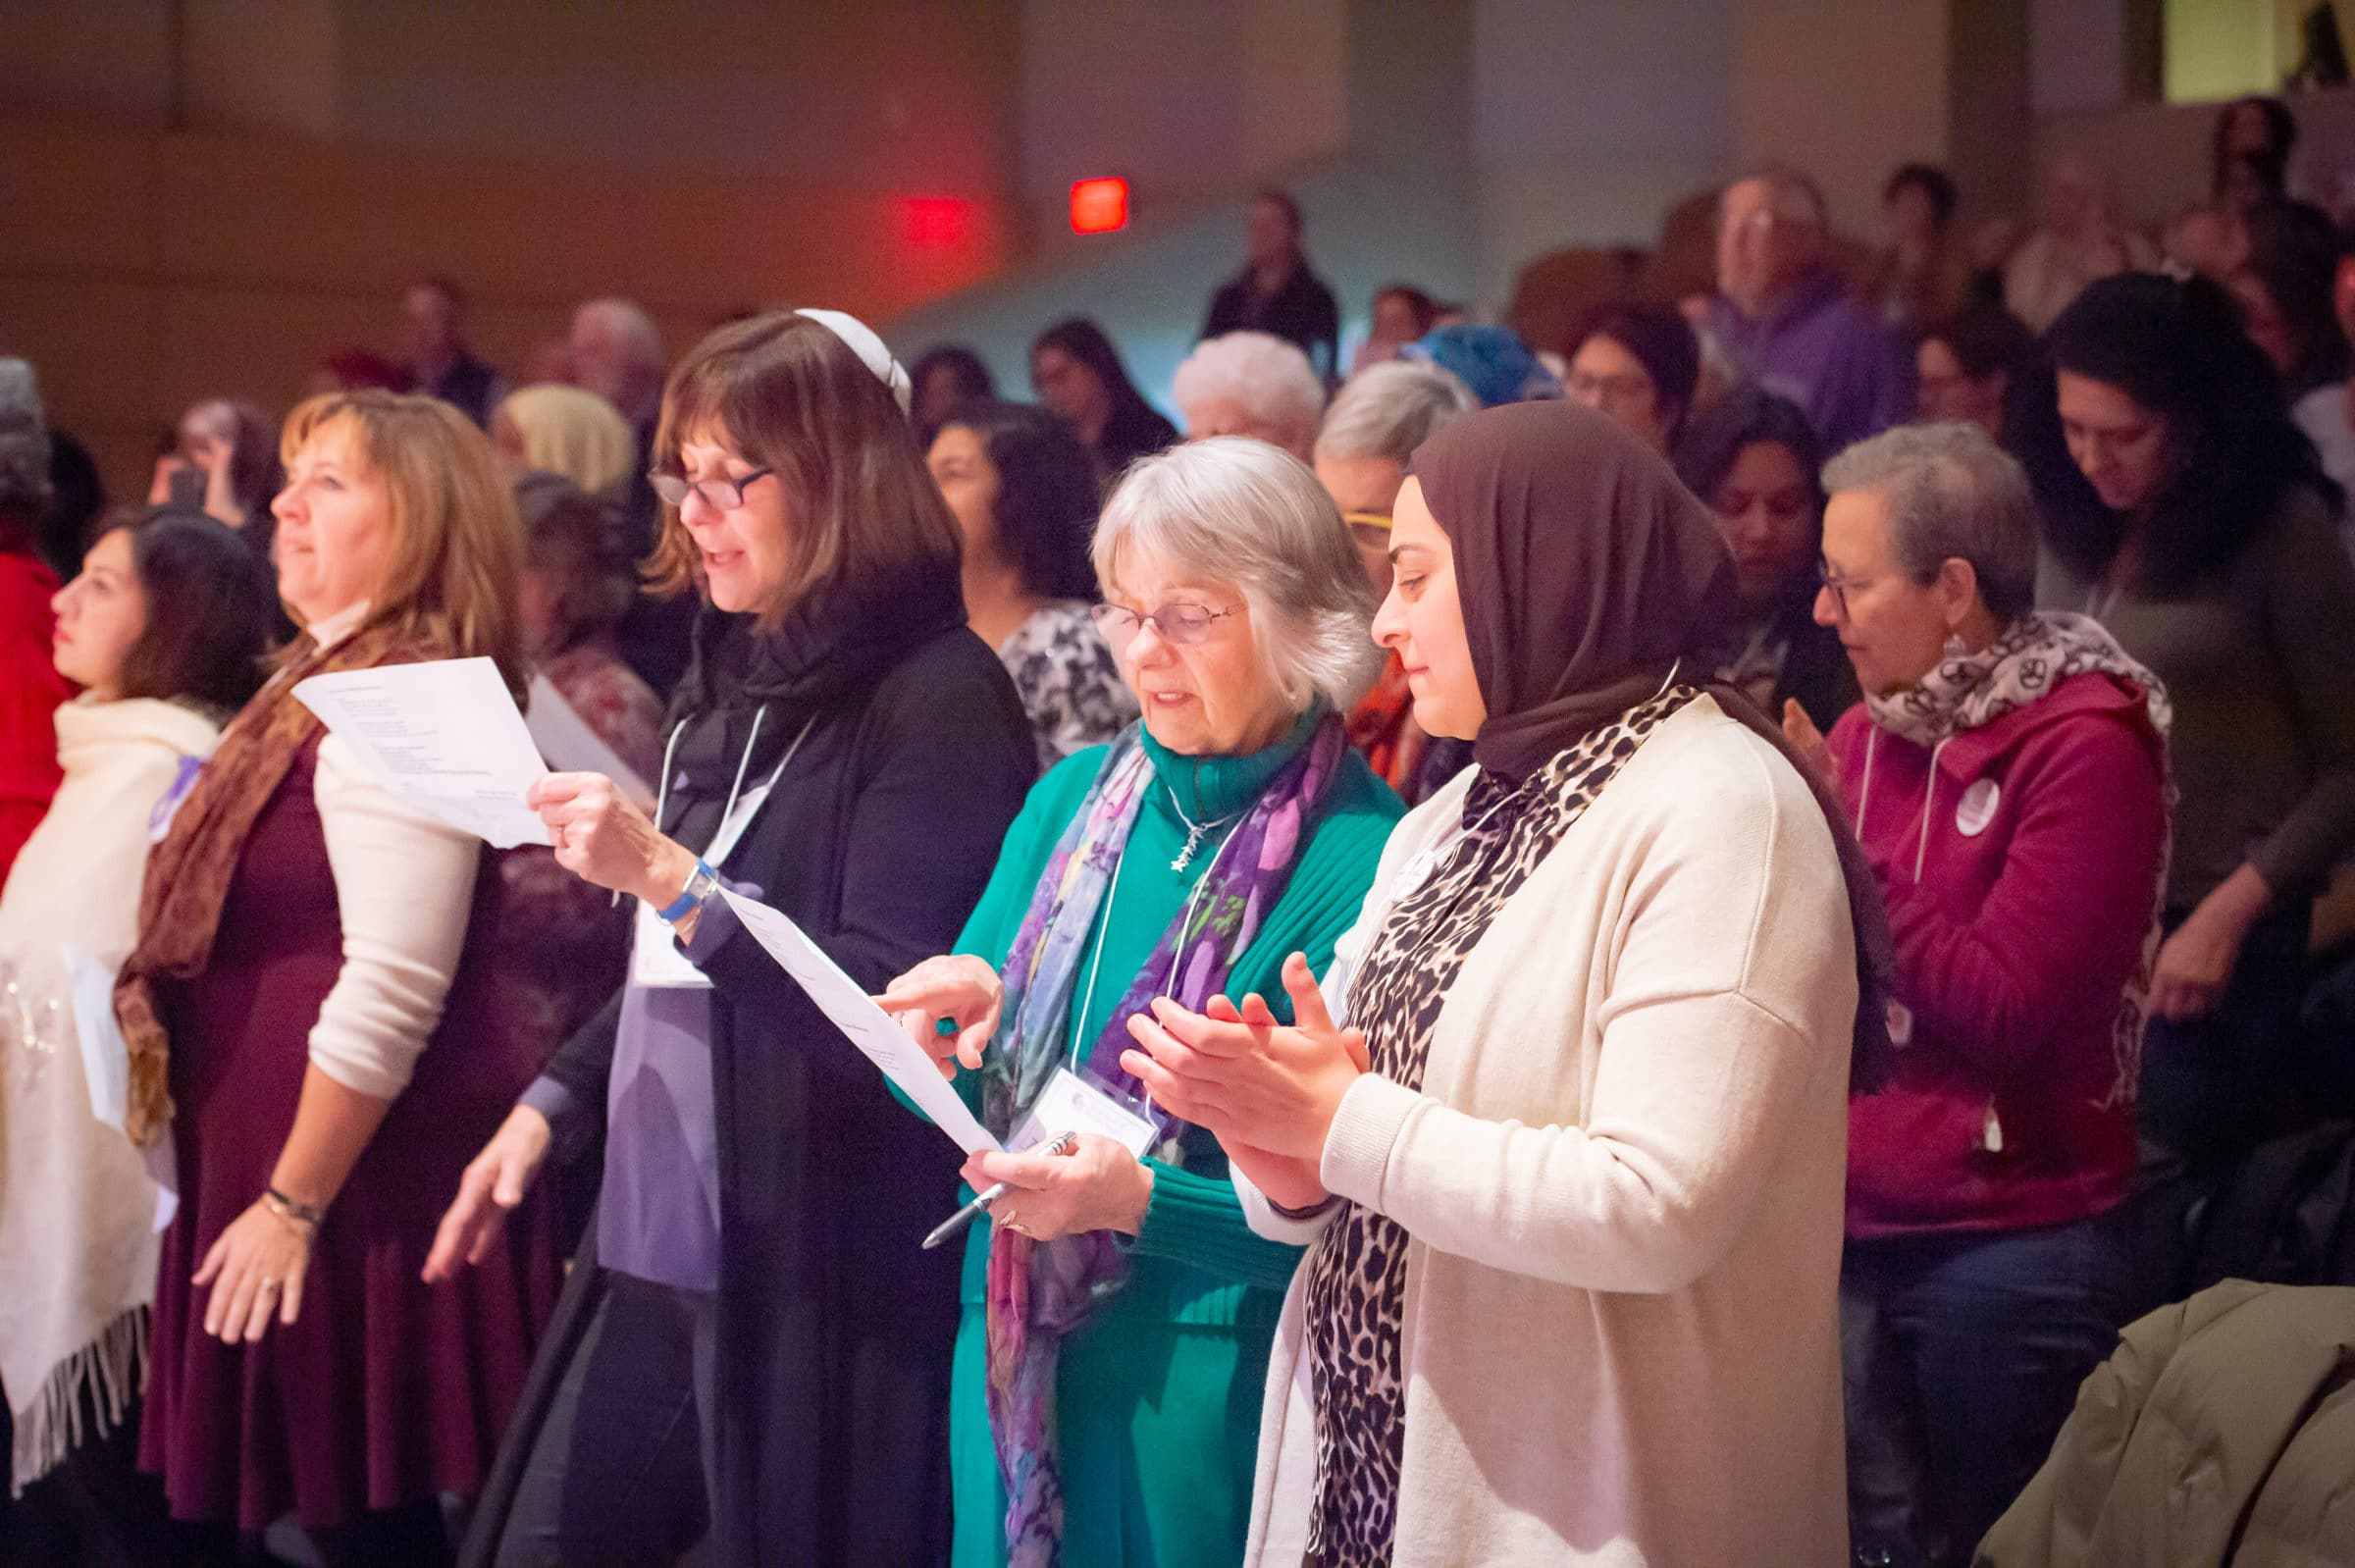 women standing and sharing a song sheet